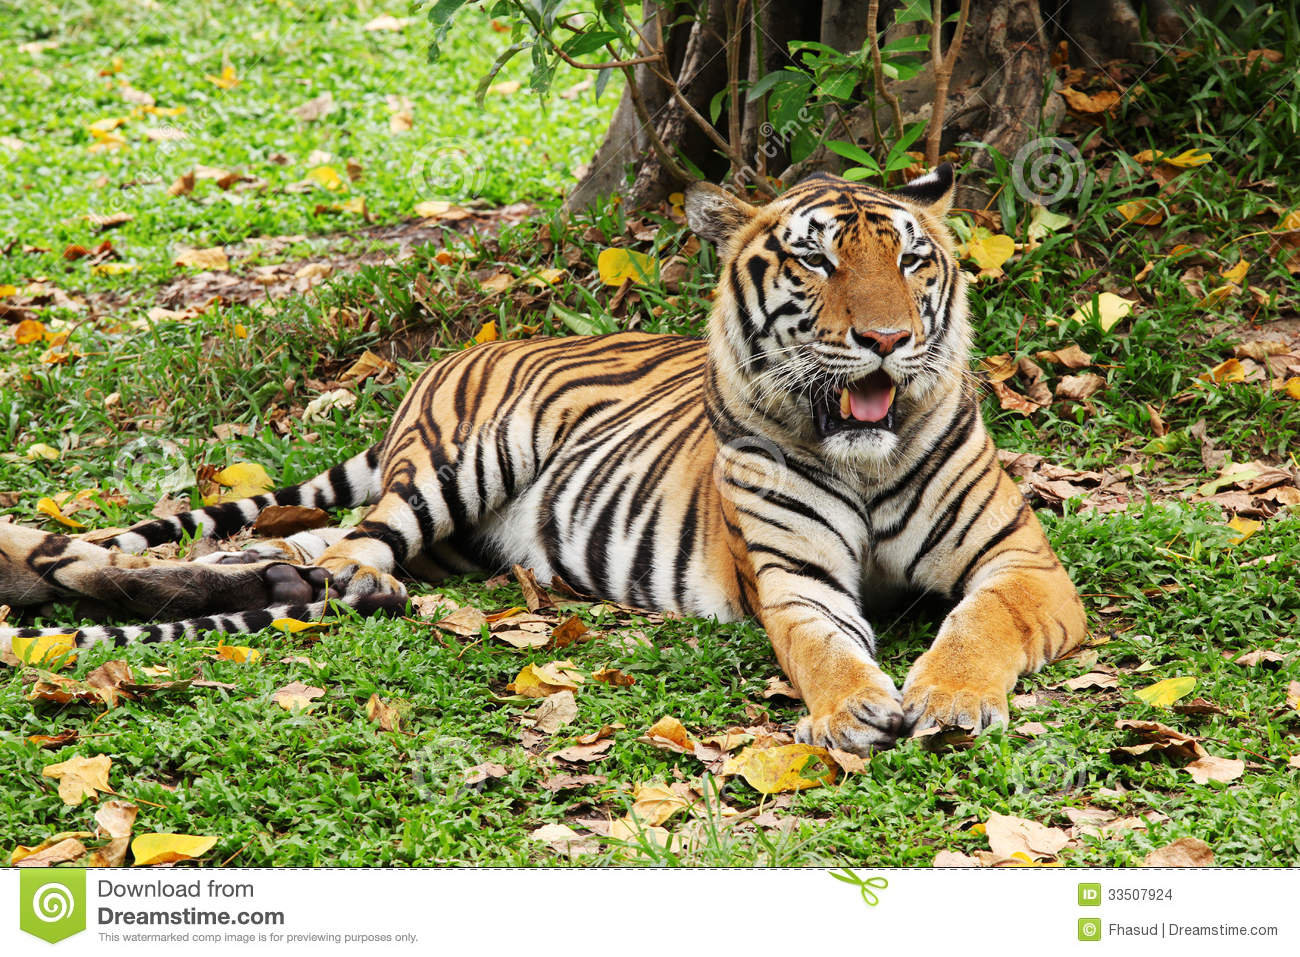 Tiger Relaxing And Laying Down Stock Images - Image: 33507924